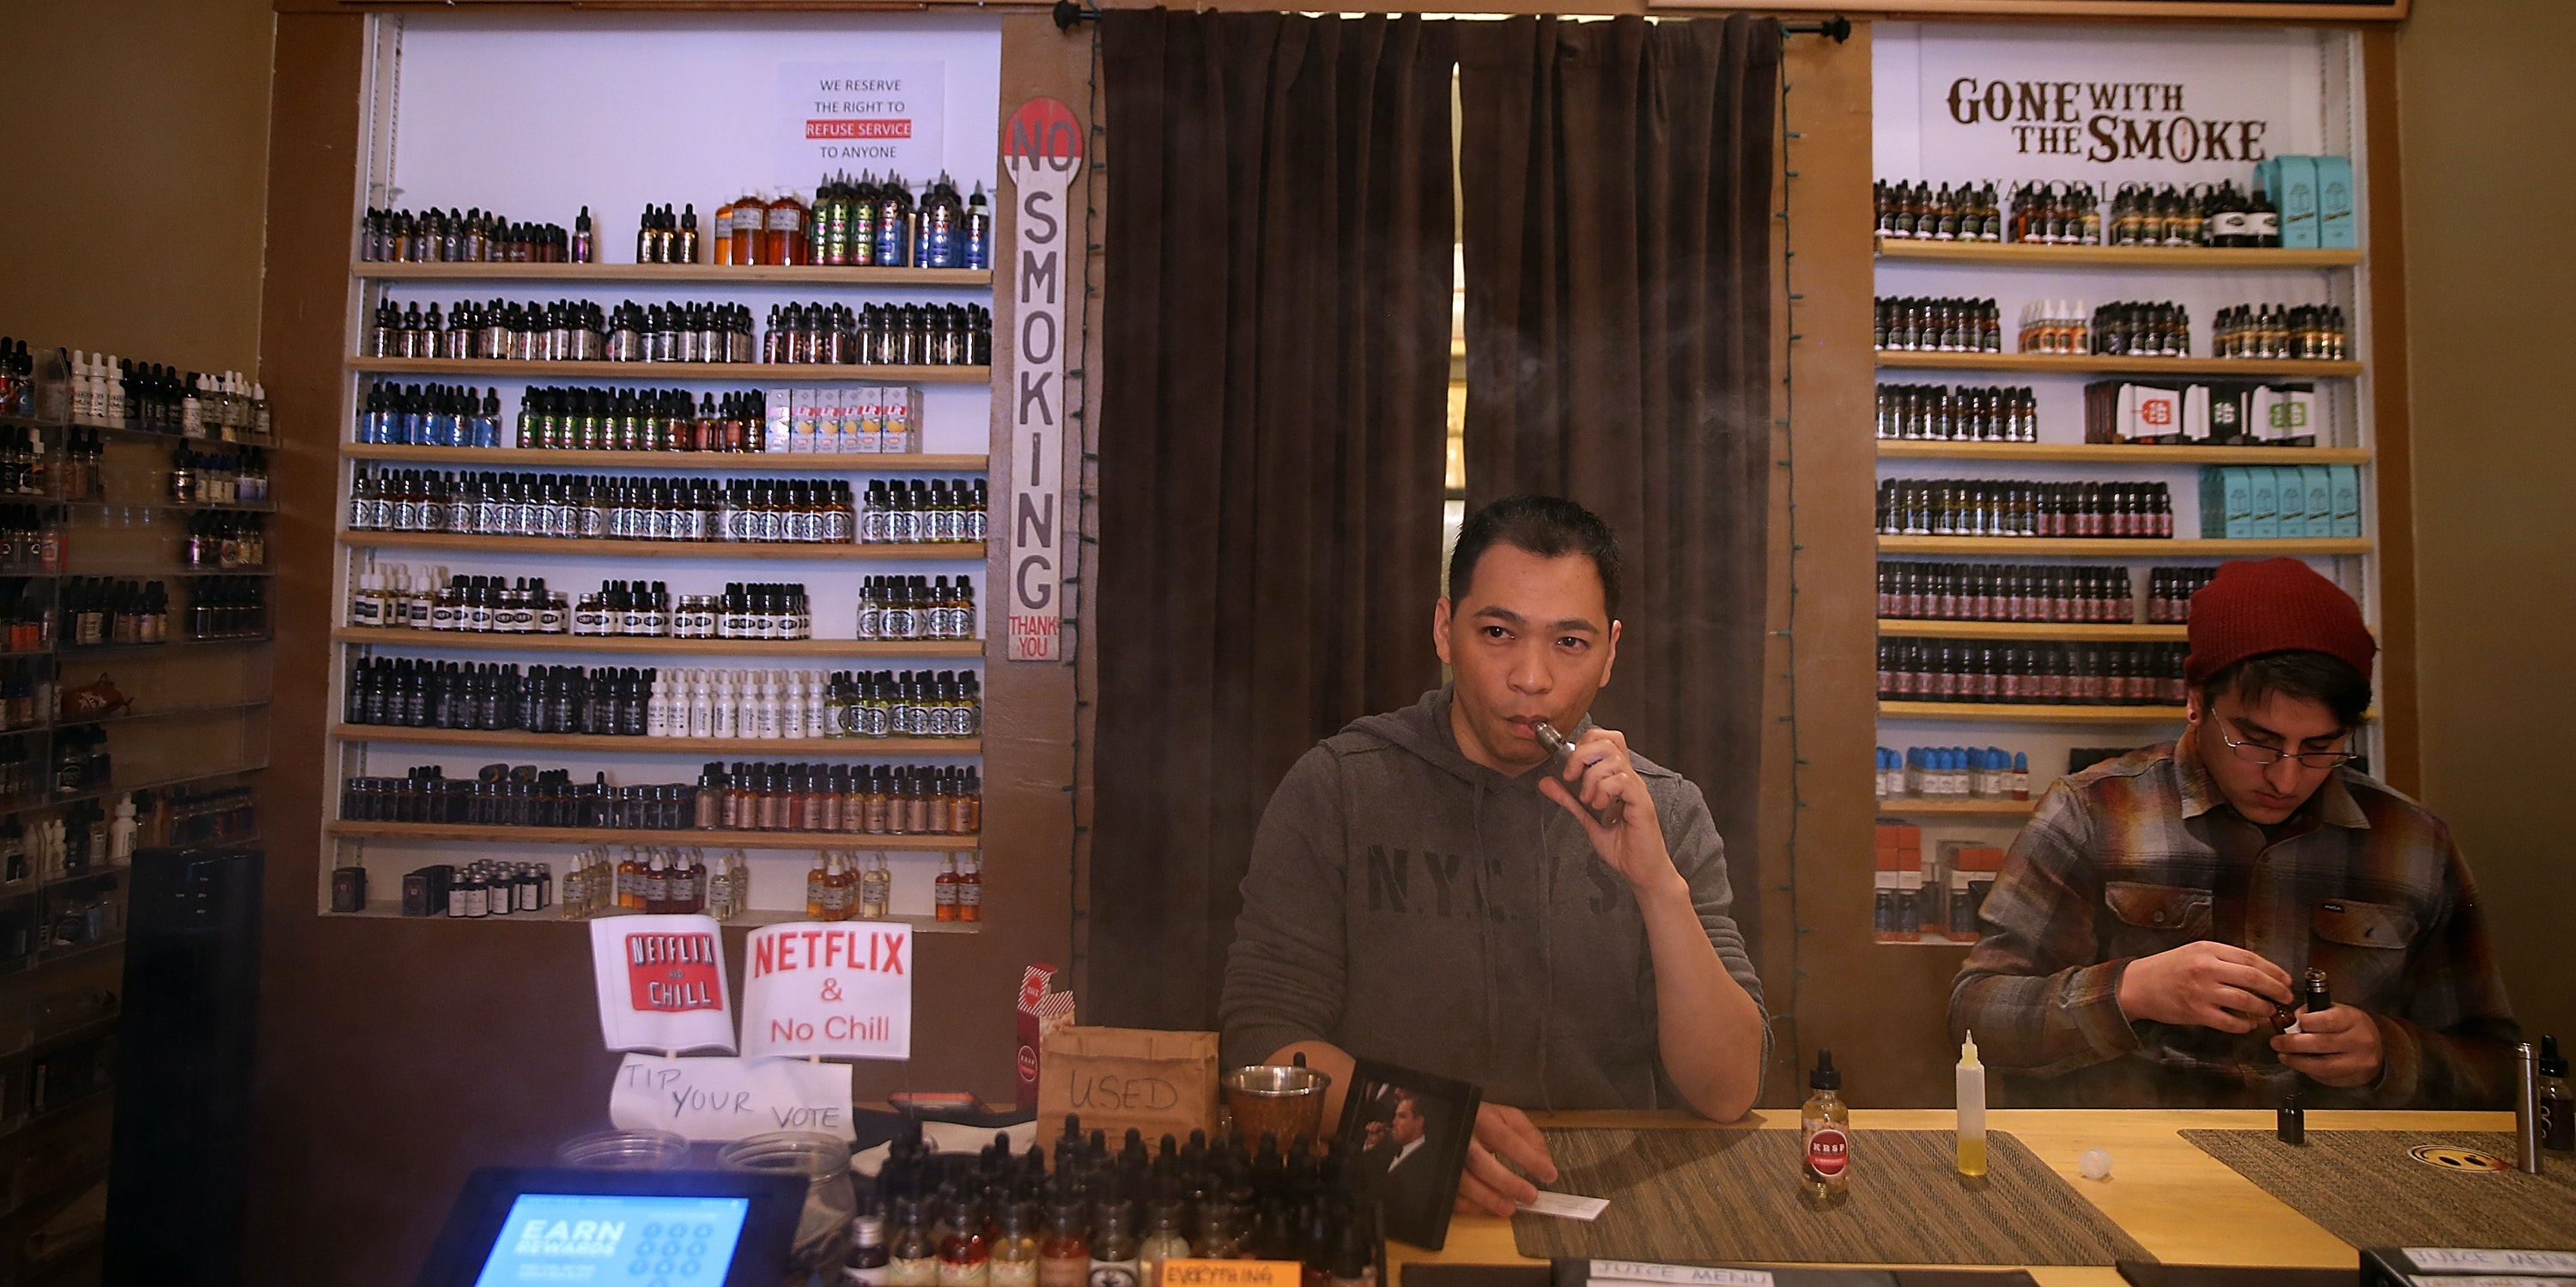 How Donald Trump Could Make Vaping a Partisan Luxury